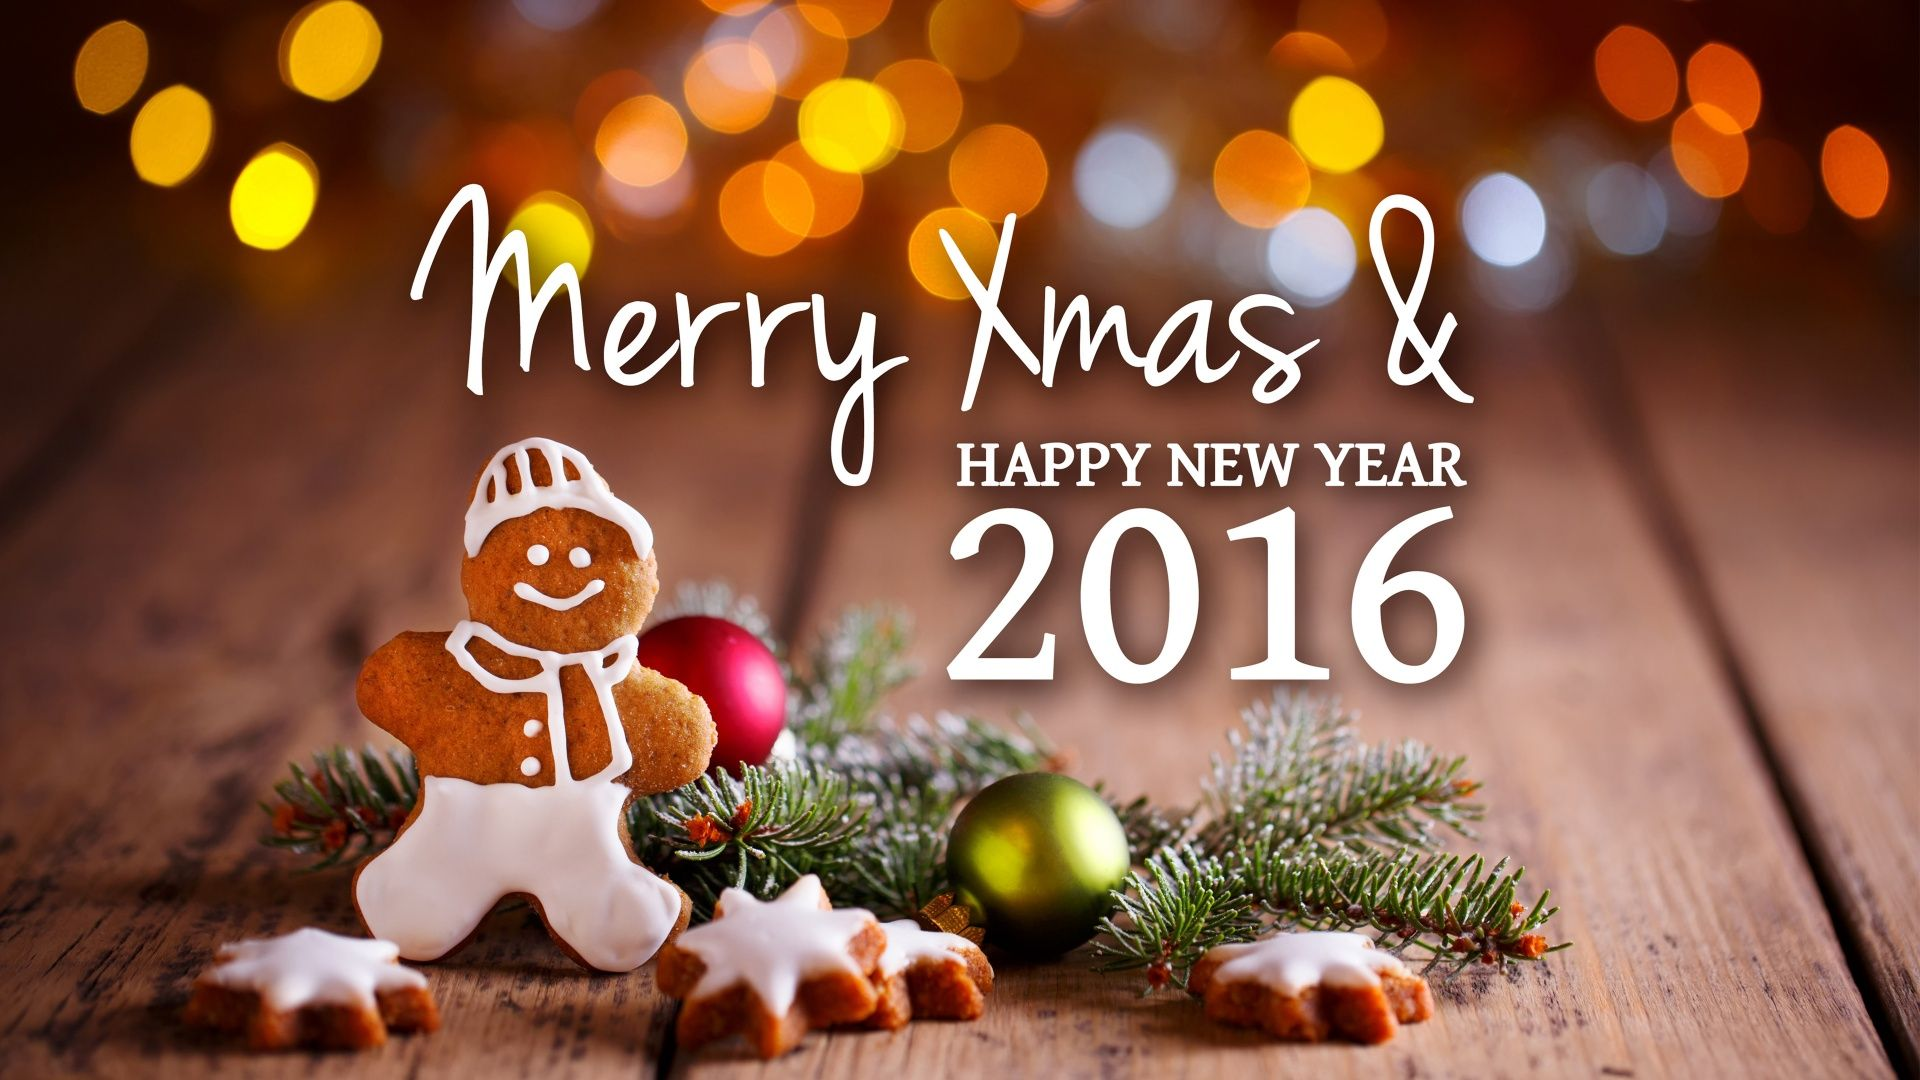 latest 2016 merry christmas pictures and happy new year